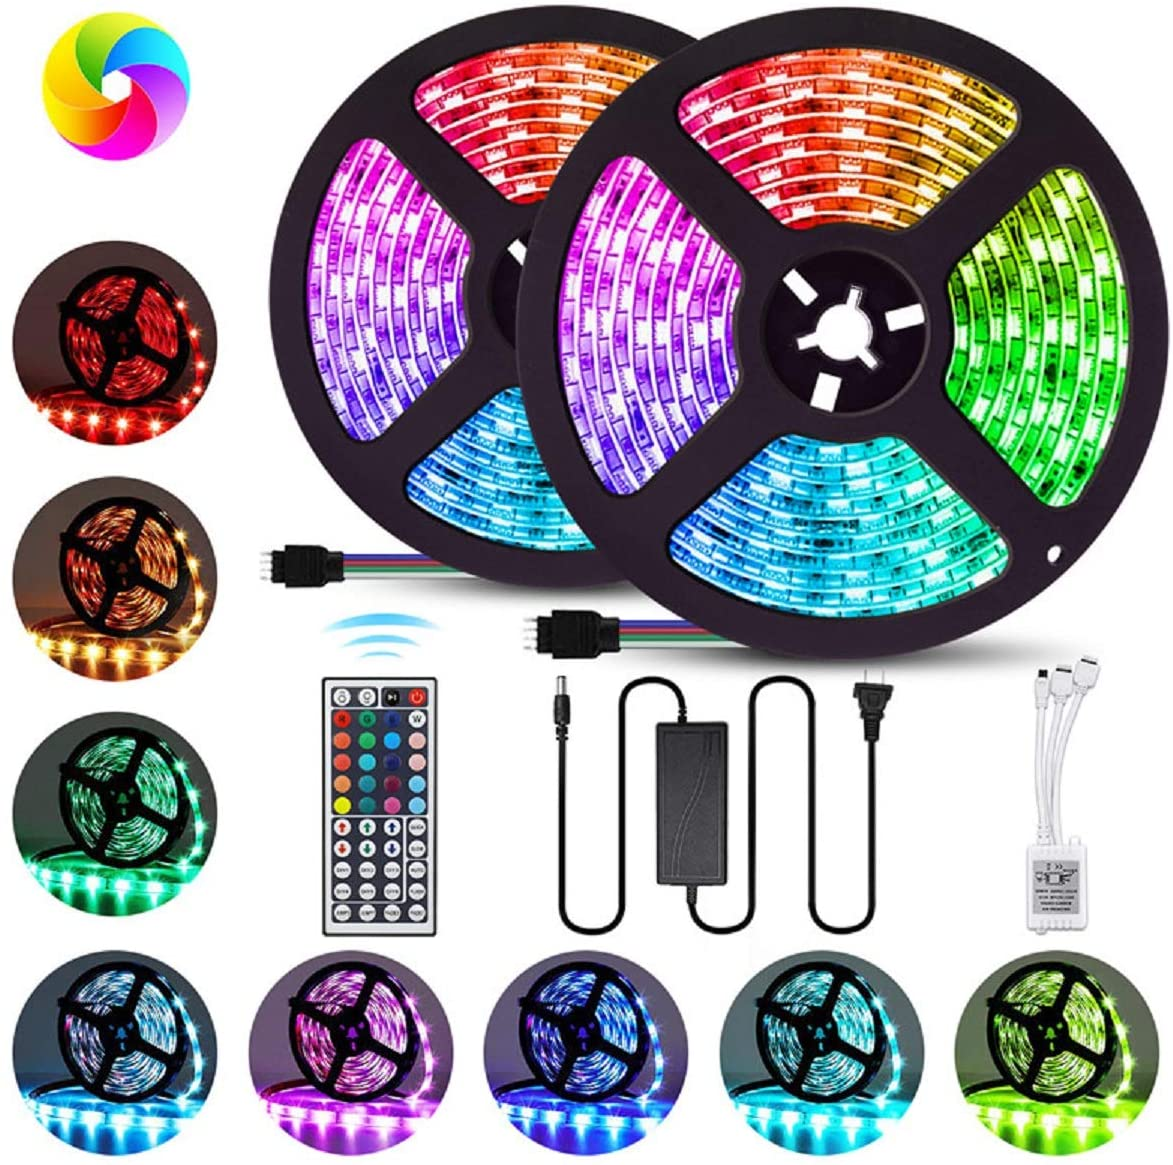 Waterproof 16.4ft Light Strip Color Changing RGB <strong>LED</strong> Strip Lights with 44 key Remote for Home Lighting Kitchen Bed